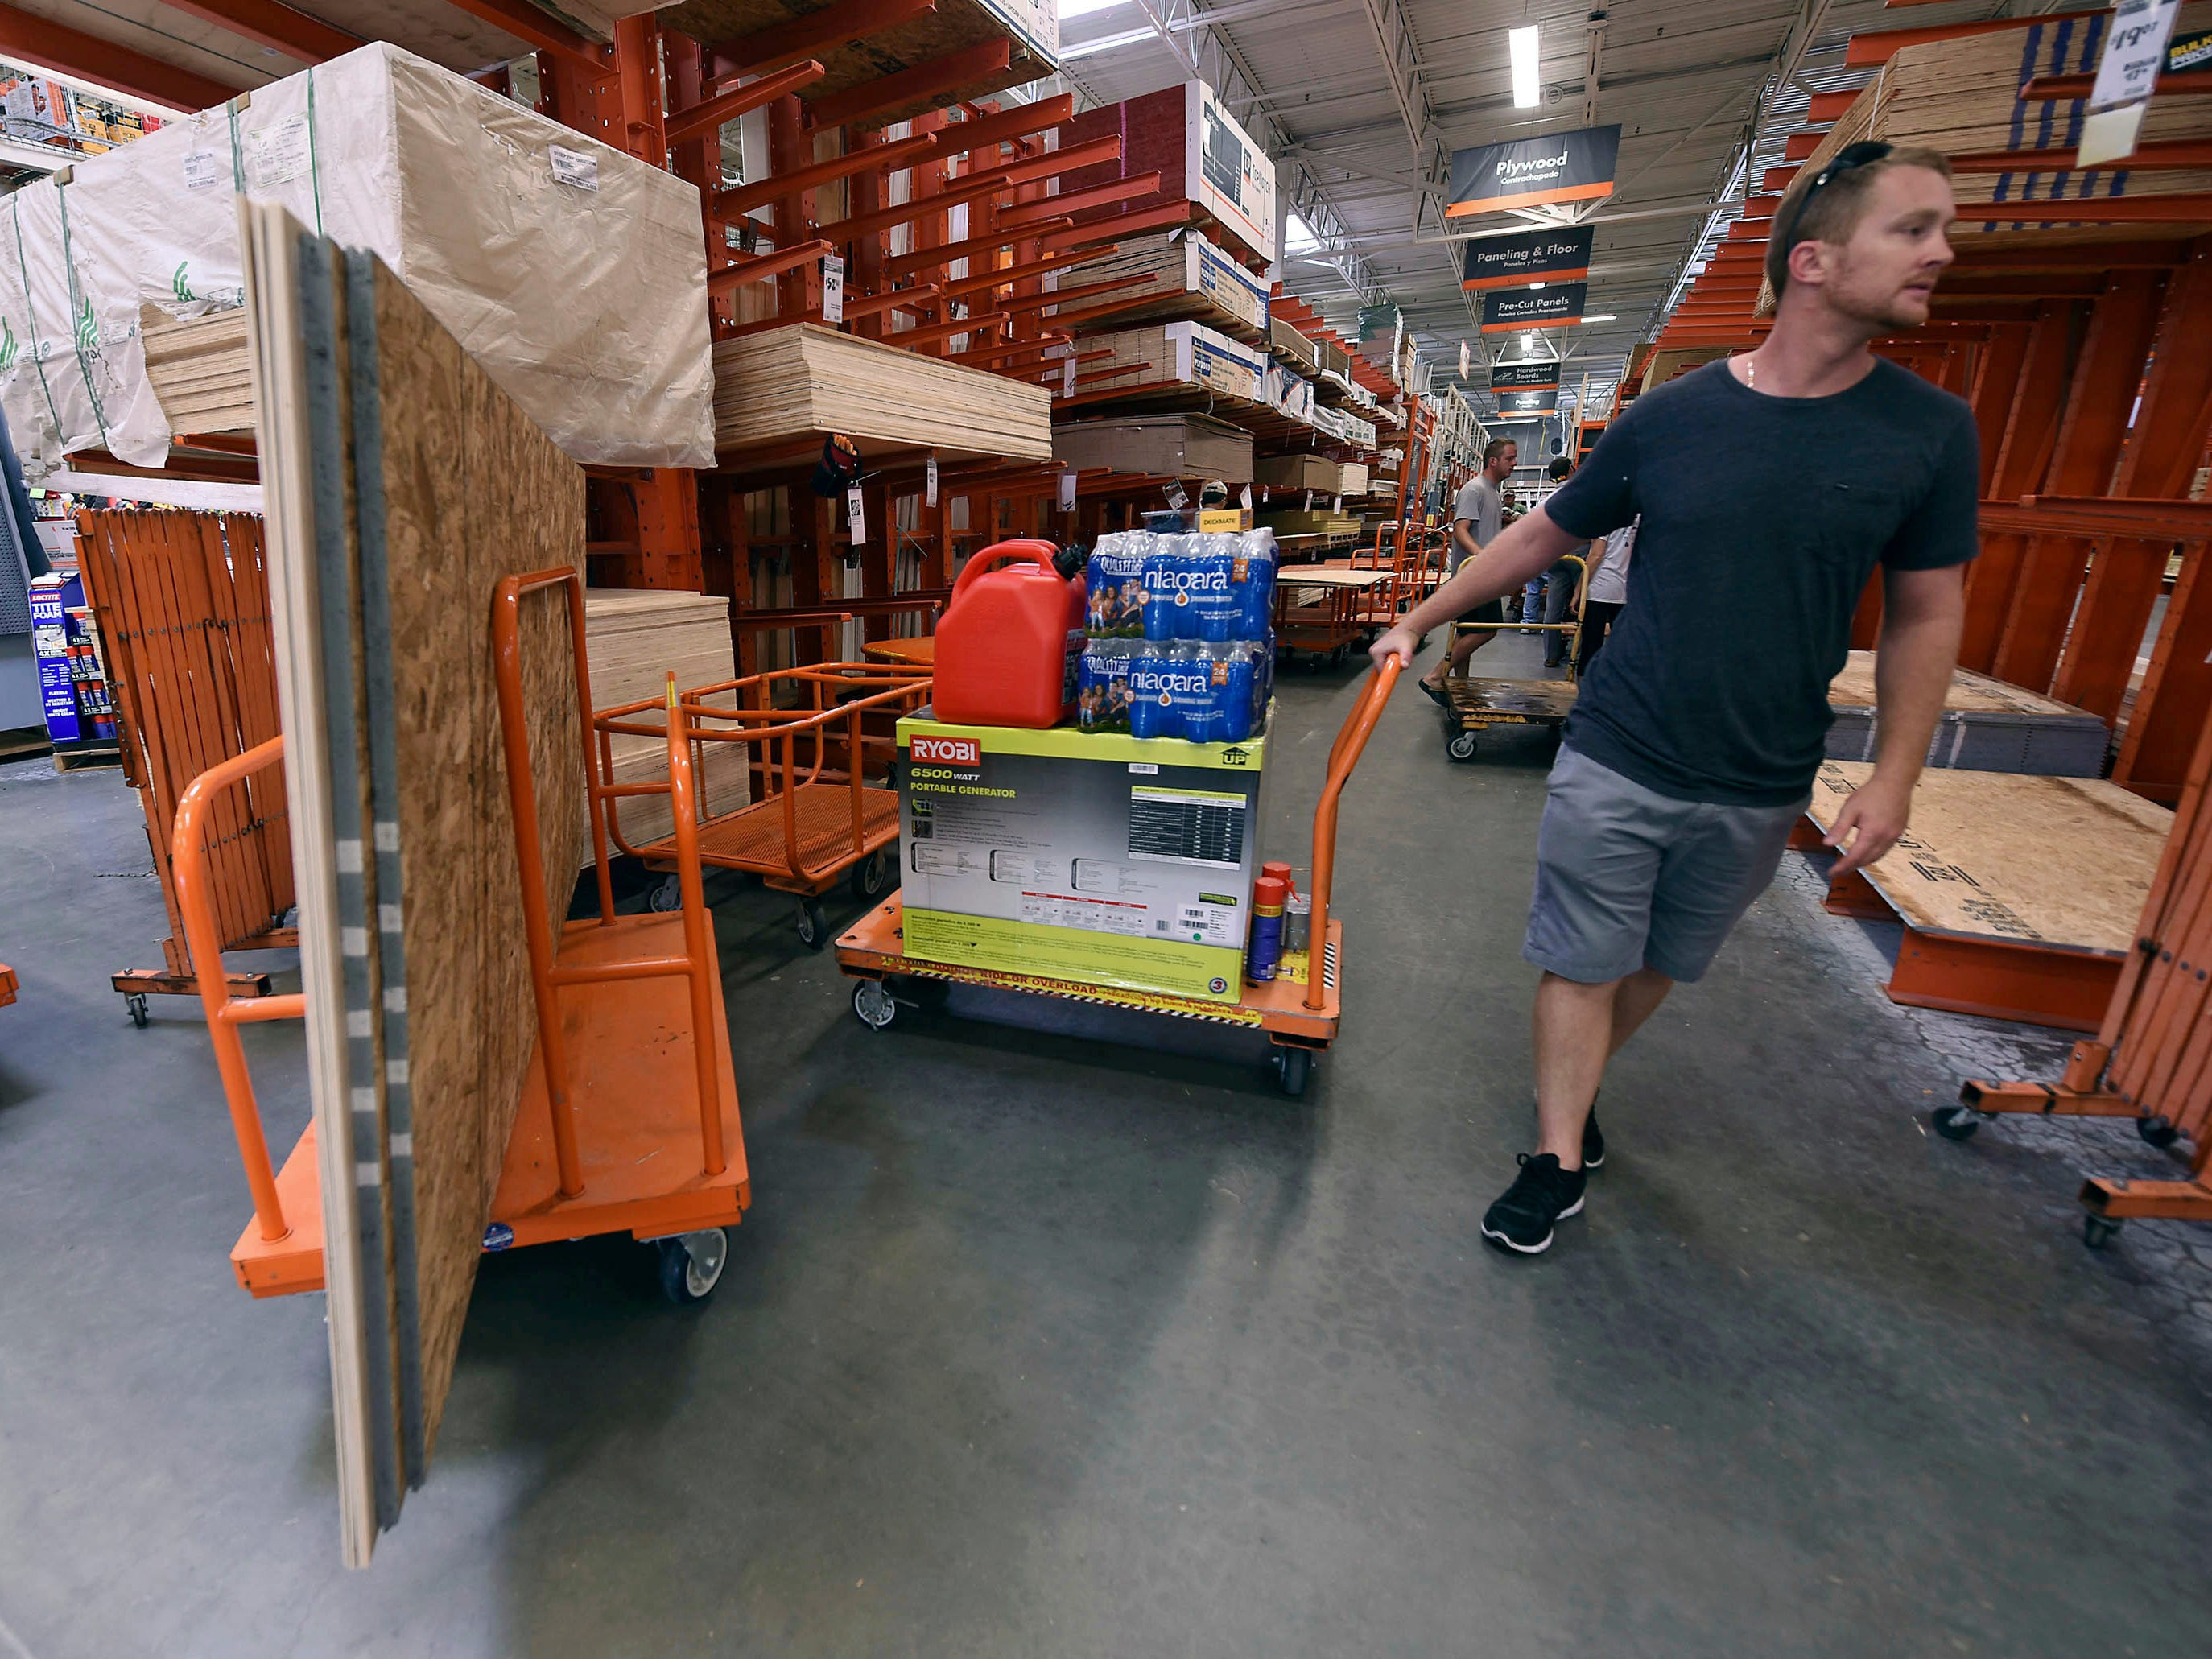 Alex Gilewicz buys supplies at The Home Depot on Monday, Sept. 10, 2018, in Wilmington, N.C. Residents of Wilmington and Southeastern N.C.